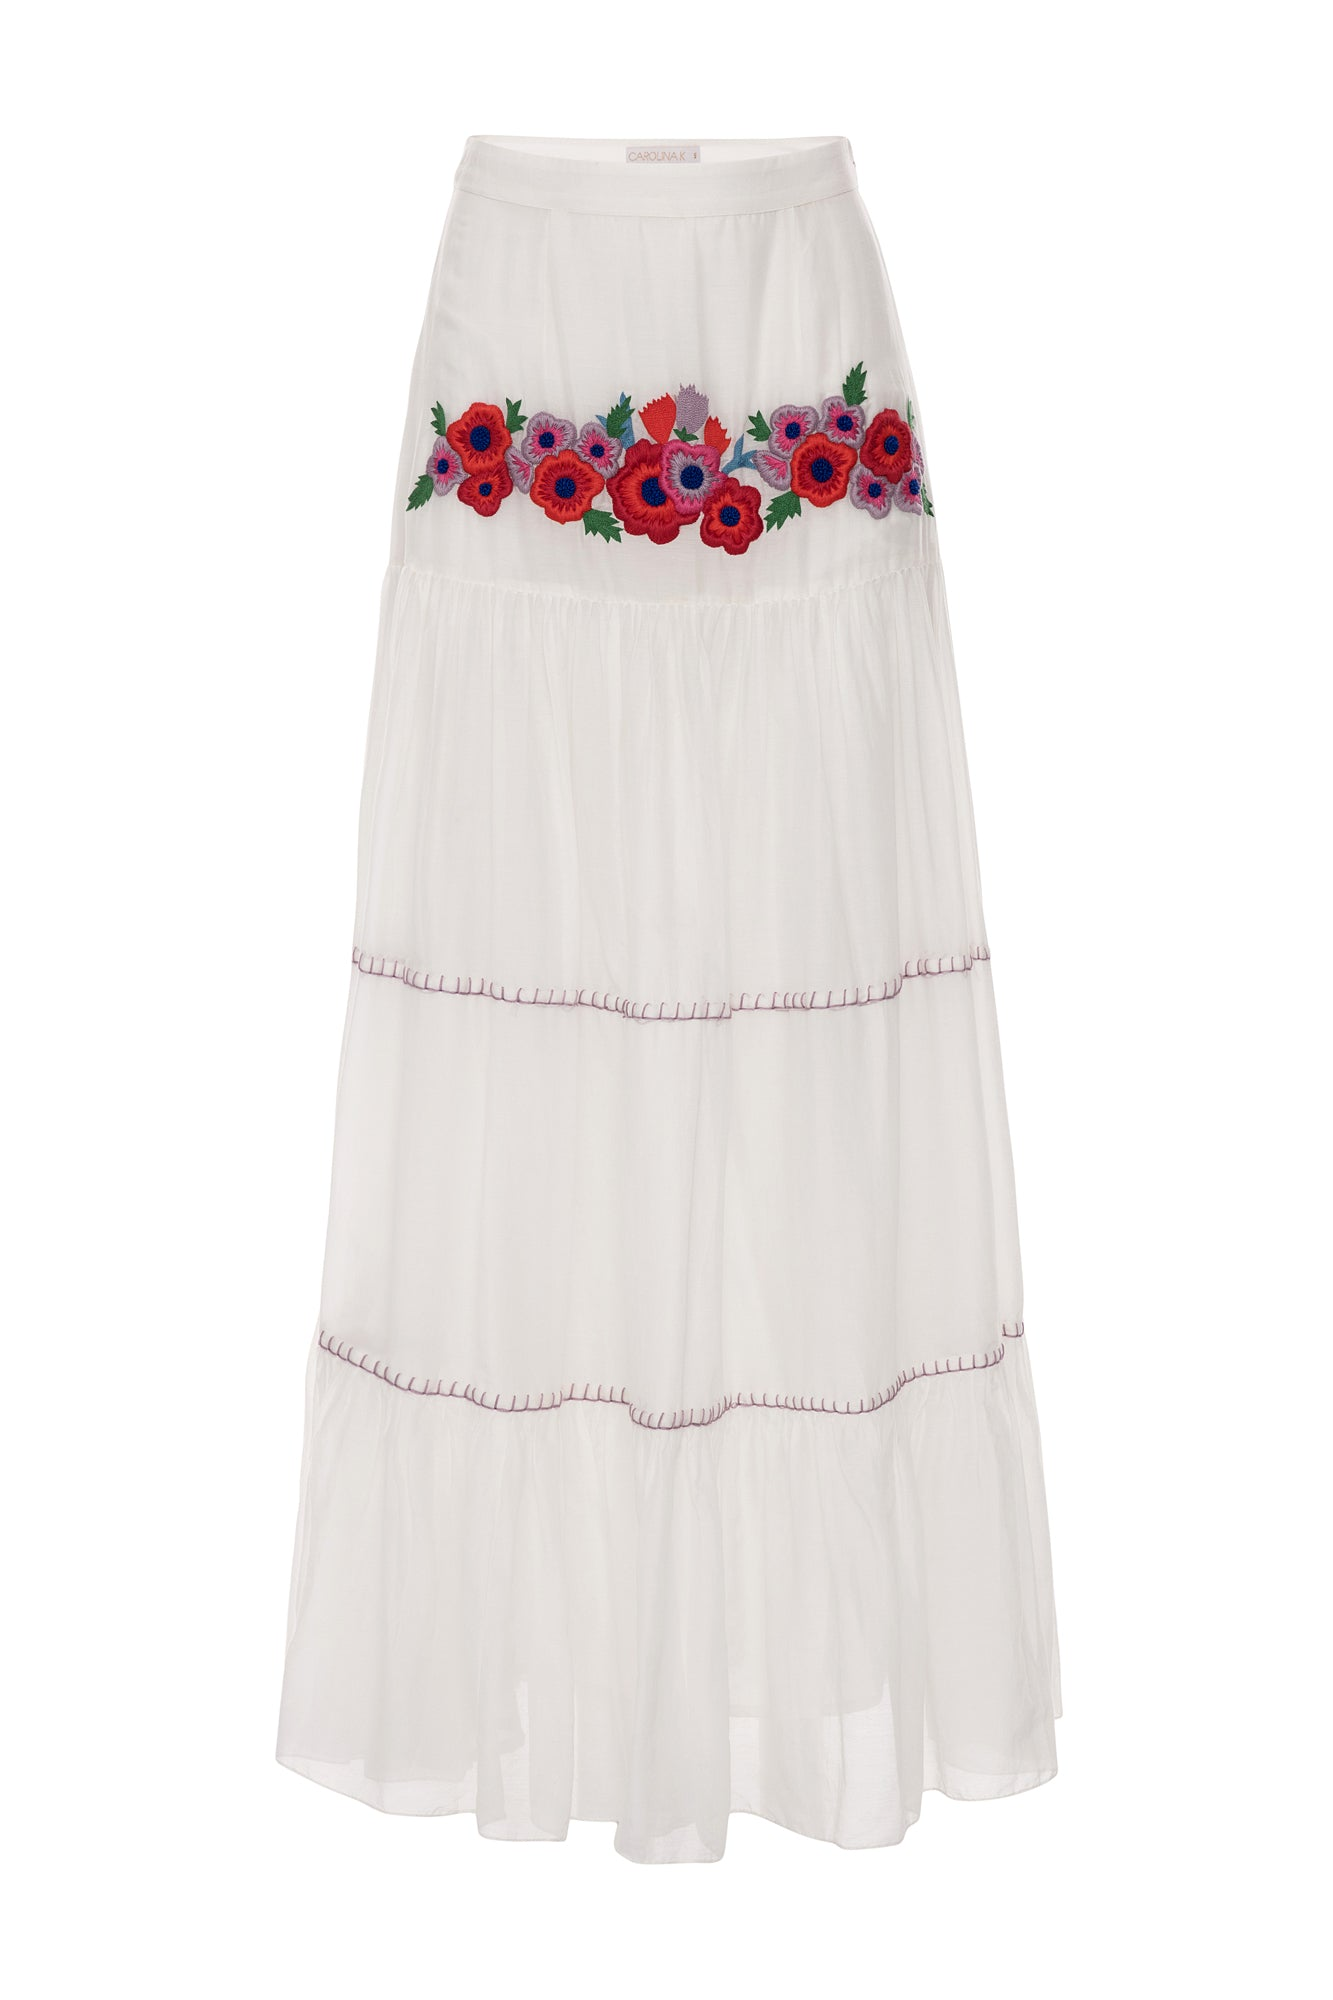 Carolina K Iris Skirt White